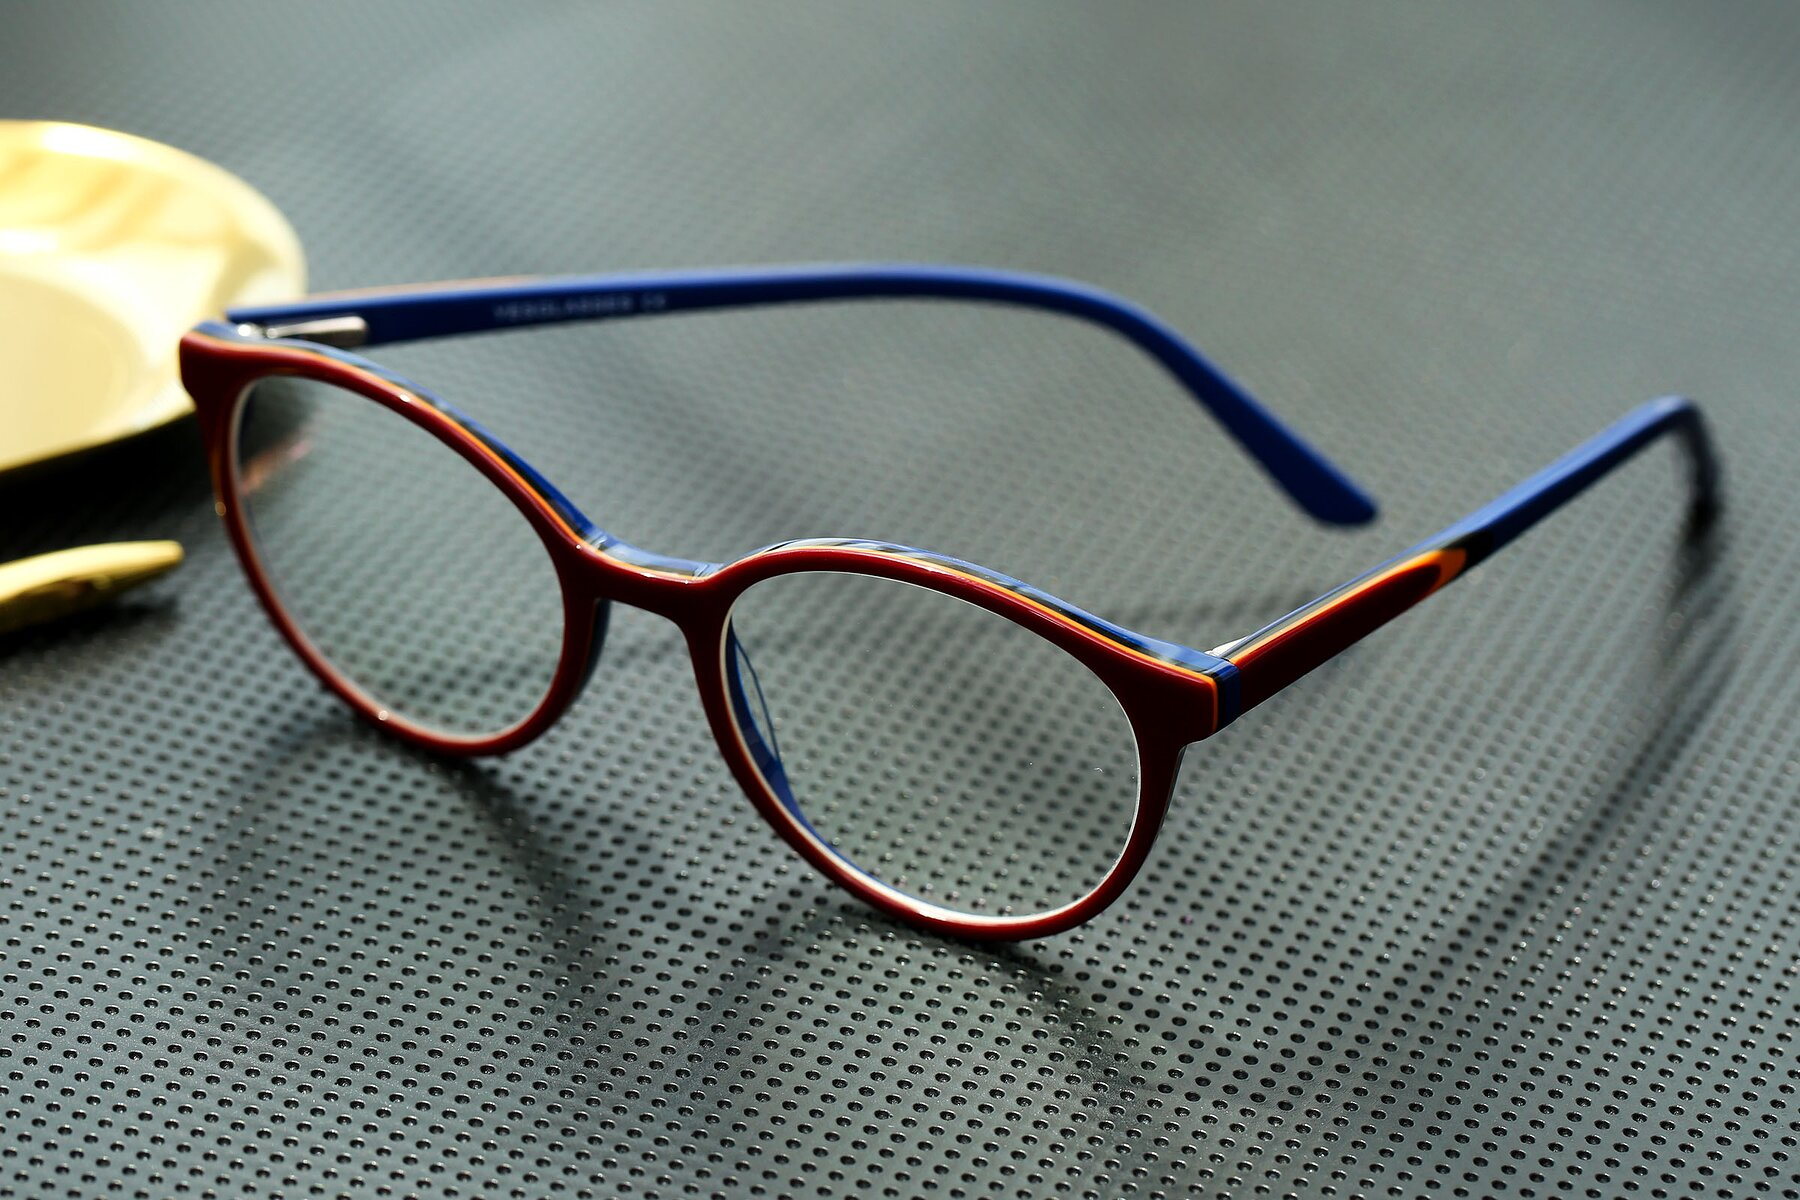 Lifestyle photography #2 of 6195 in Wine with Clear Eyeglass Lenses